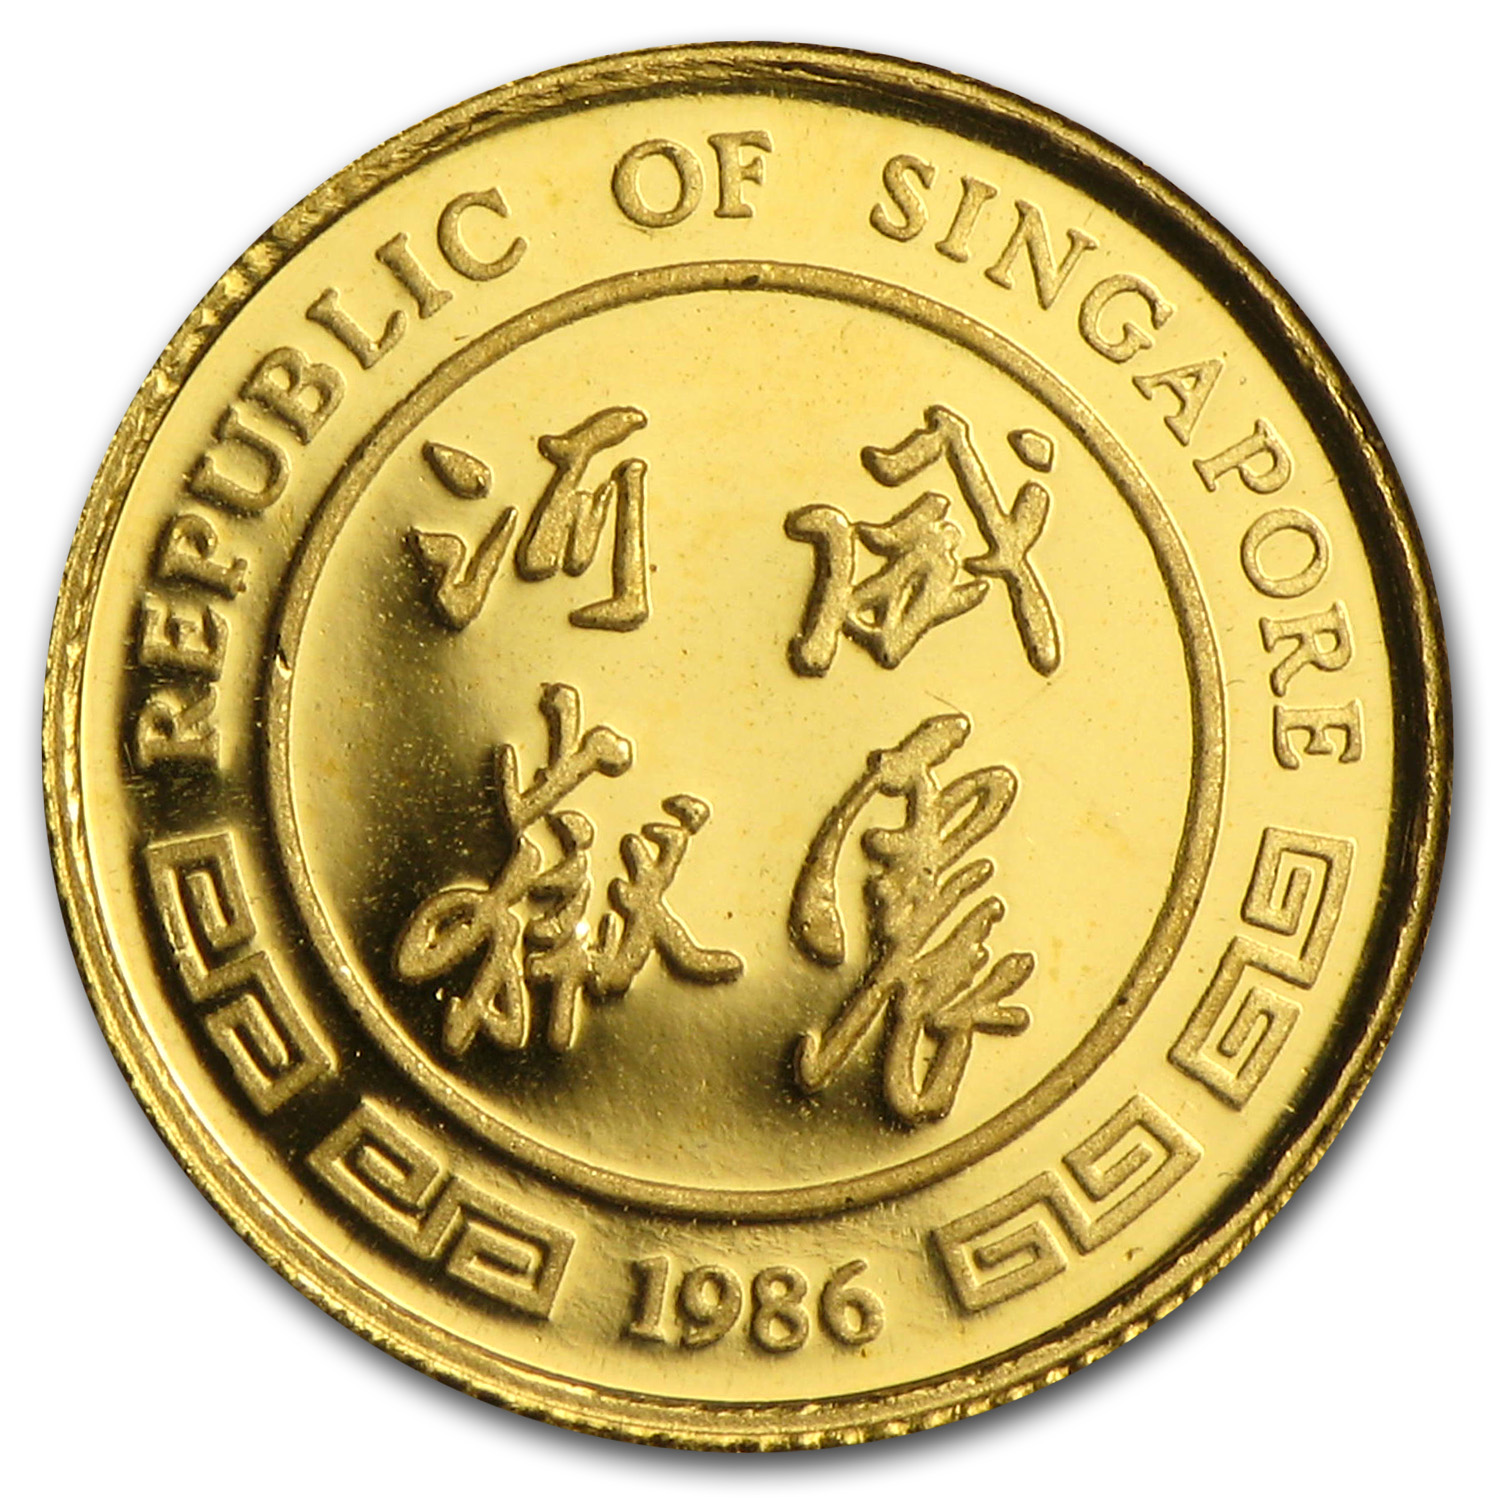 Singapore 1986 - Tiger (5 Singold) 1/20 Gold Coin (Proof)